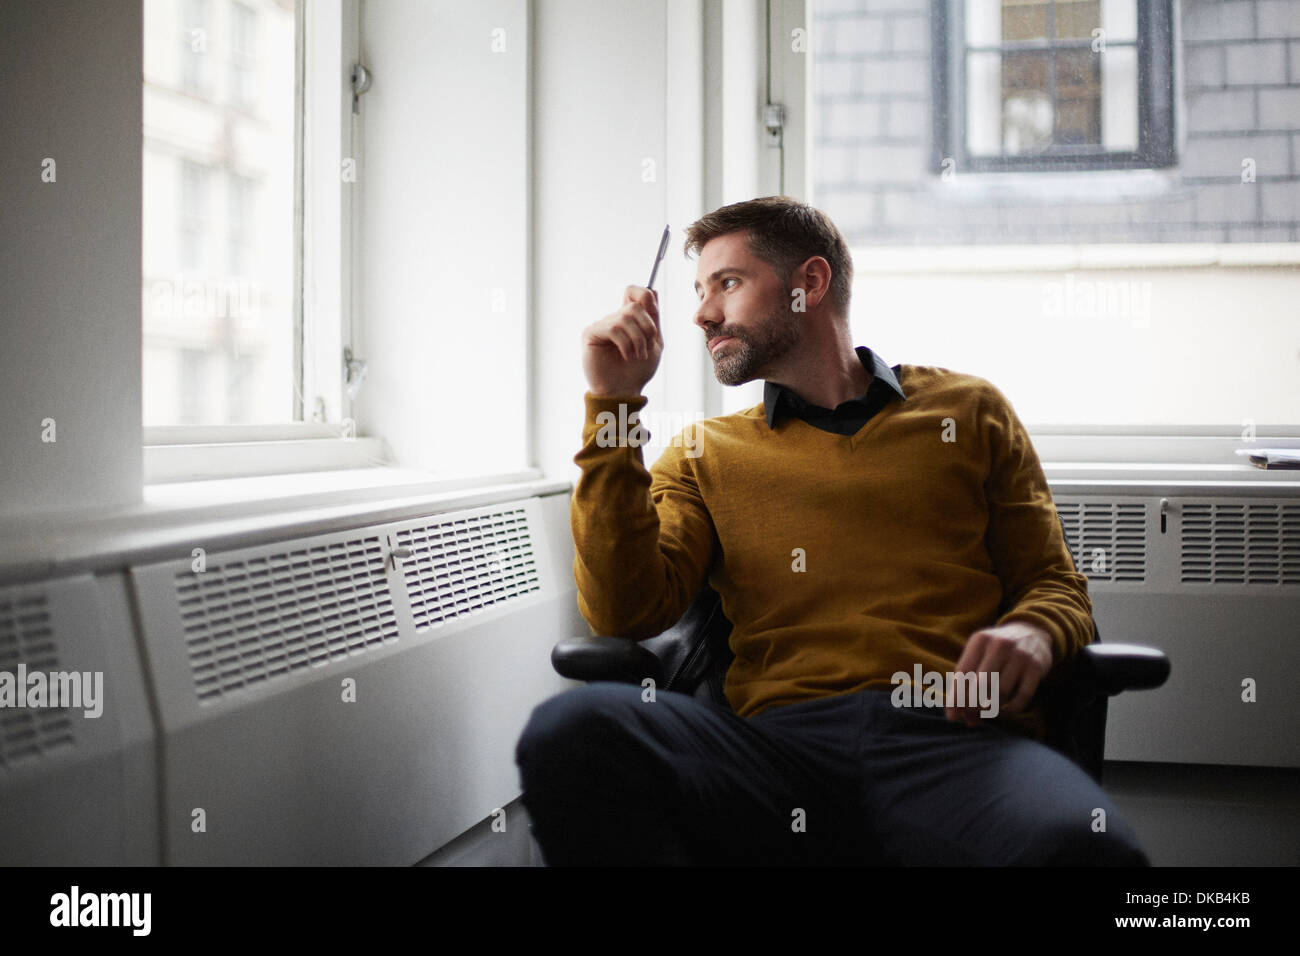 Businessman looking out of window Photo Stock